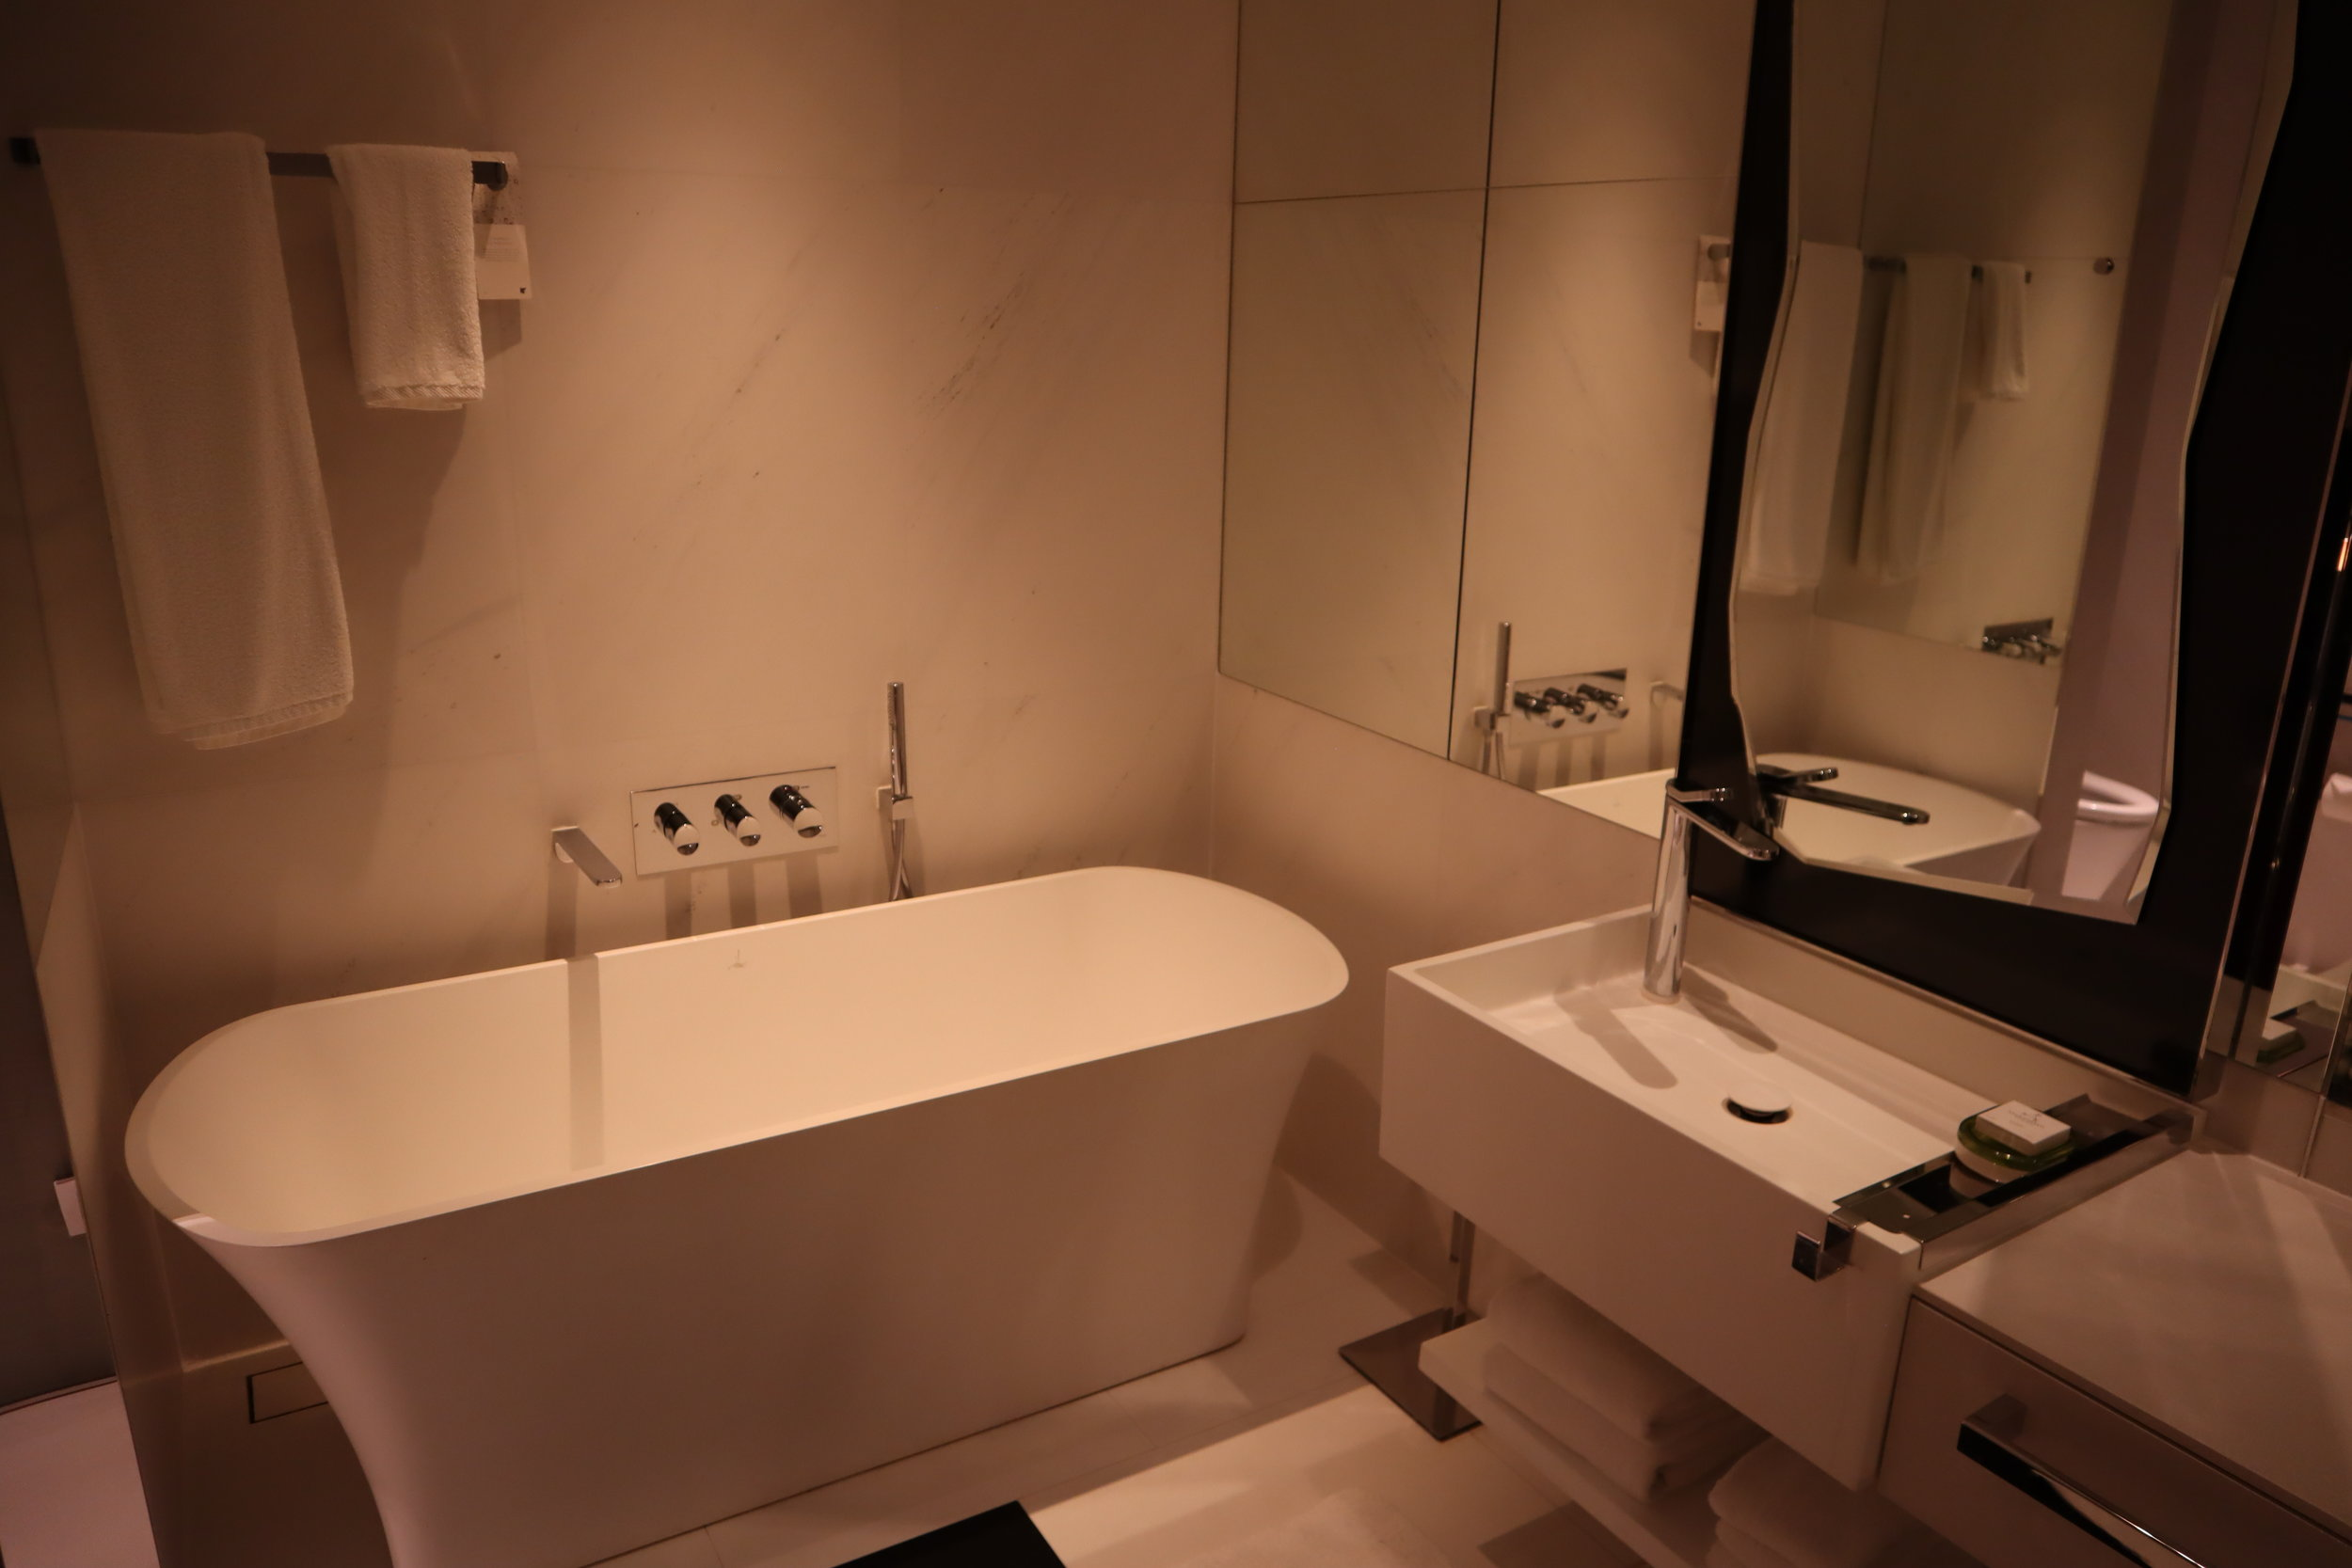 JW Marriott Singapore South Beach – Standard room